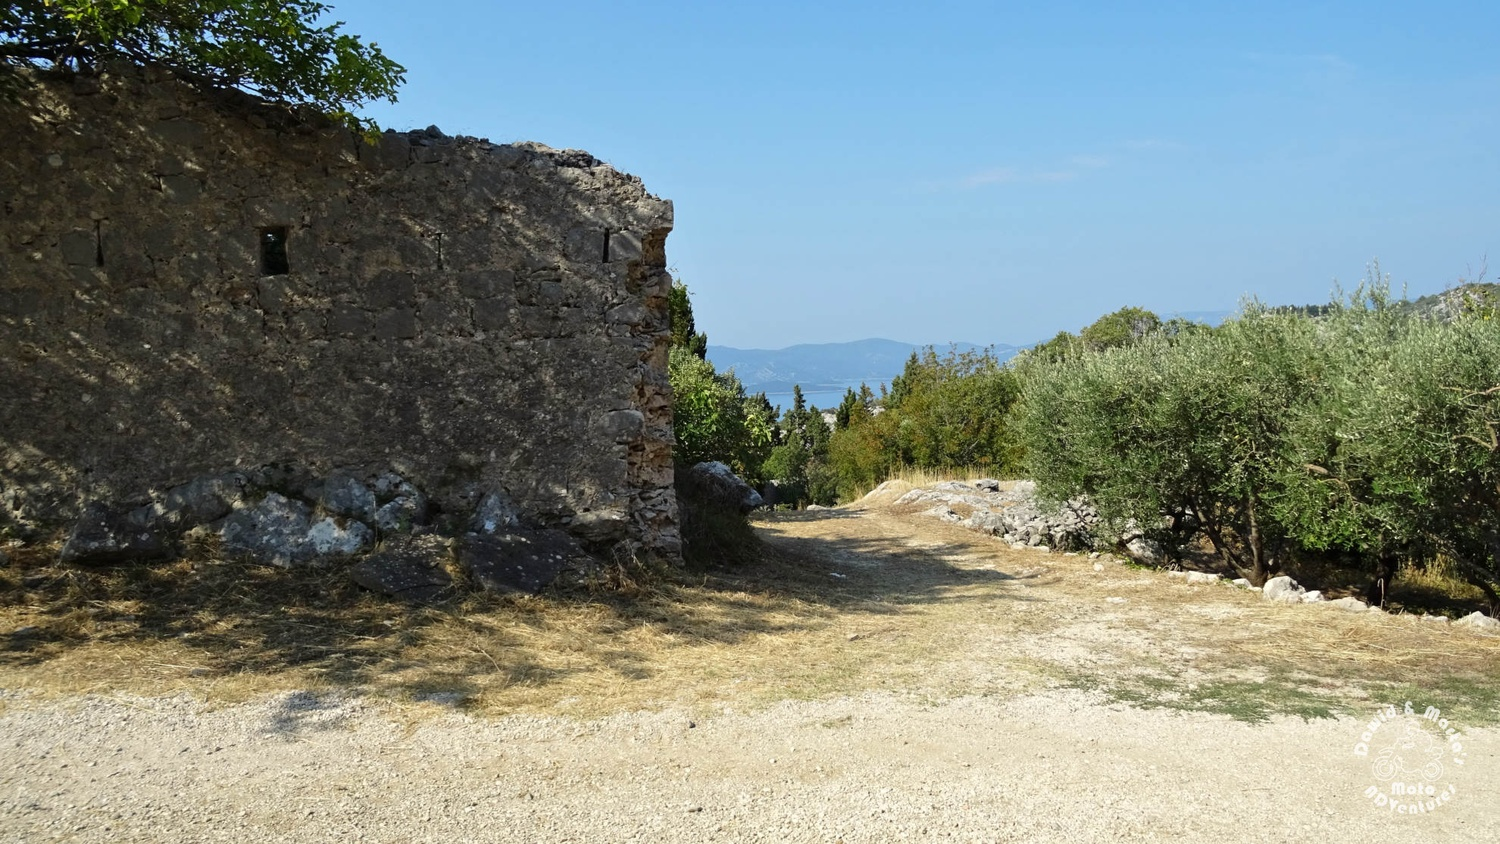 Entrance to the Smrden Grad fortress